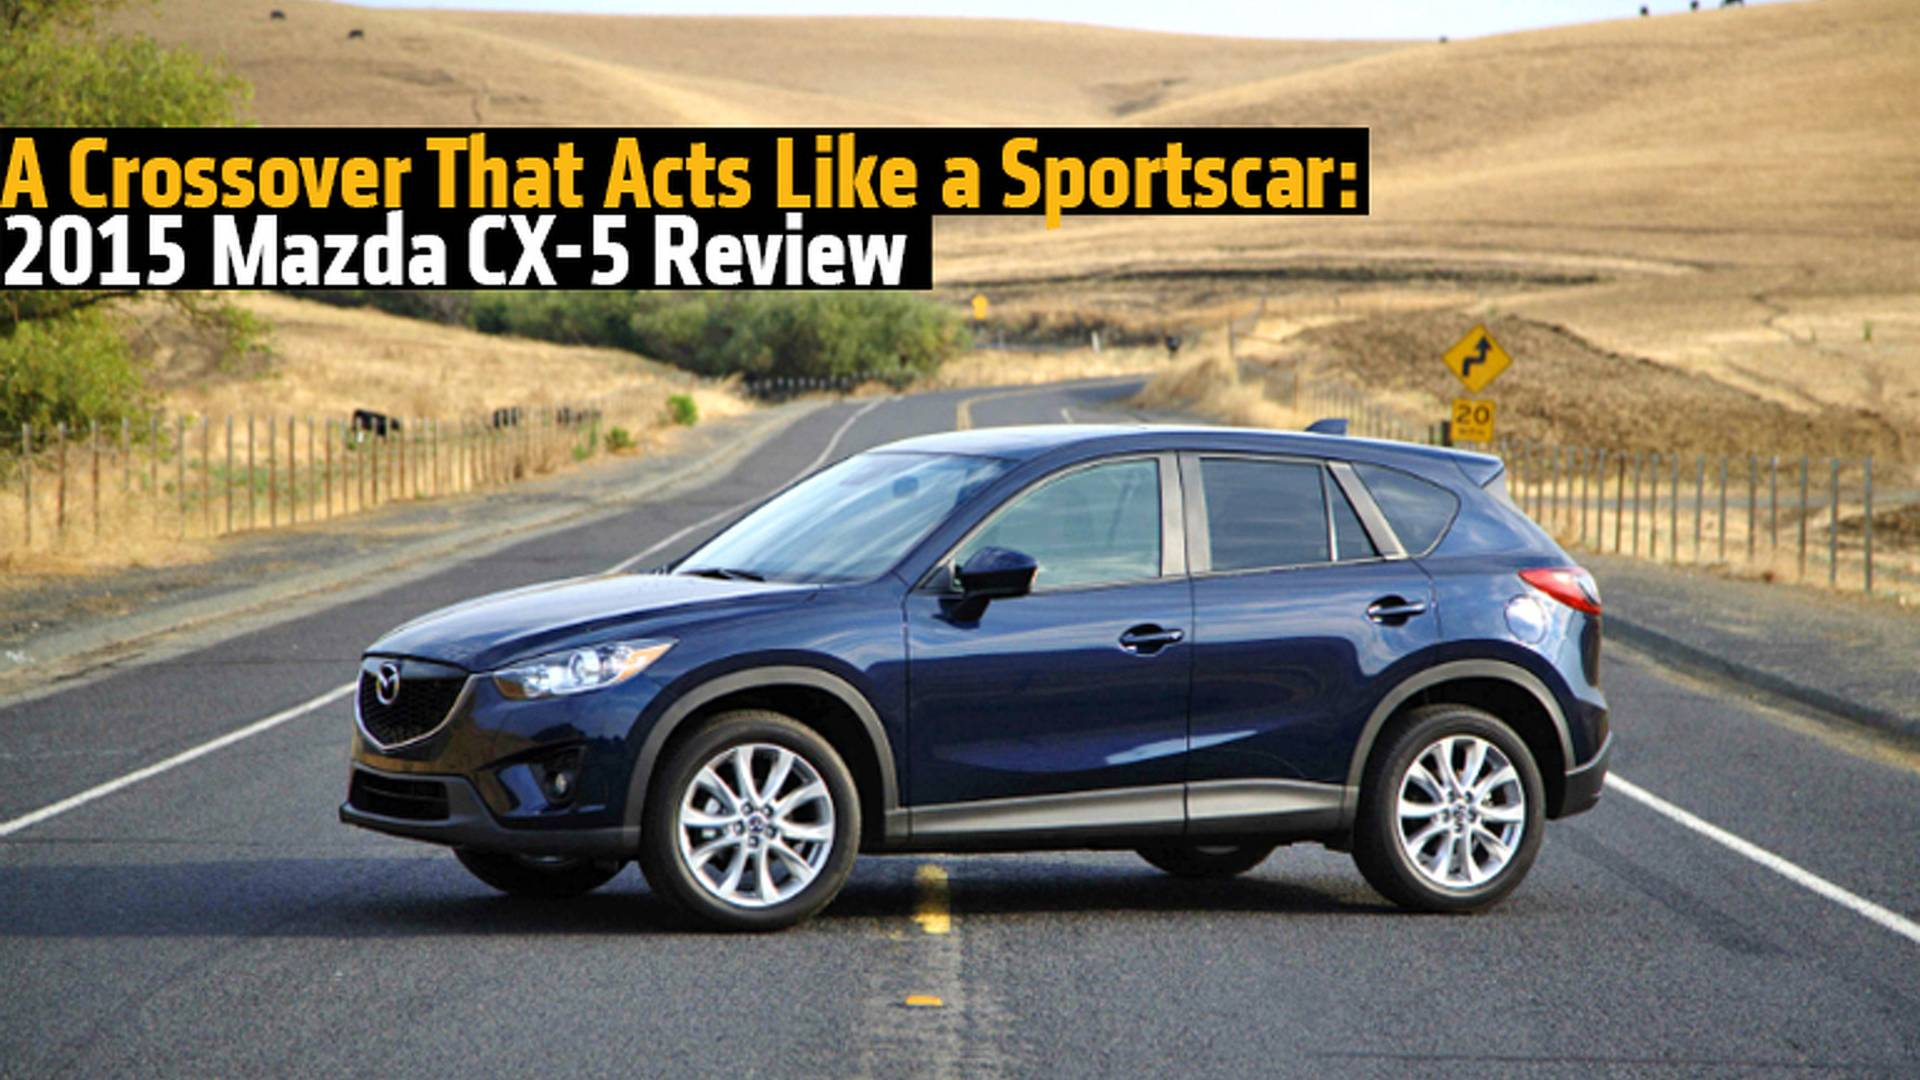 A Crossover That Acts Like A Sportscar 2015 Mazda Cx 5 Review